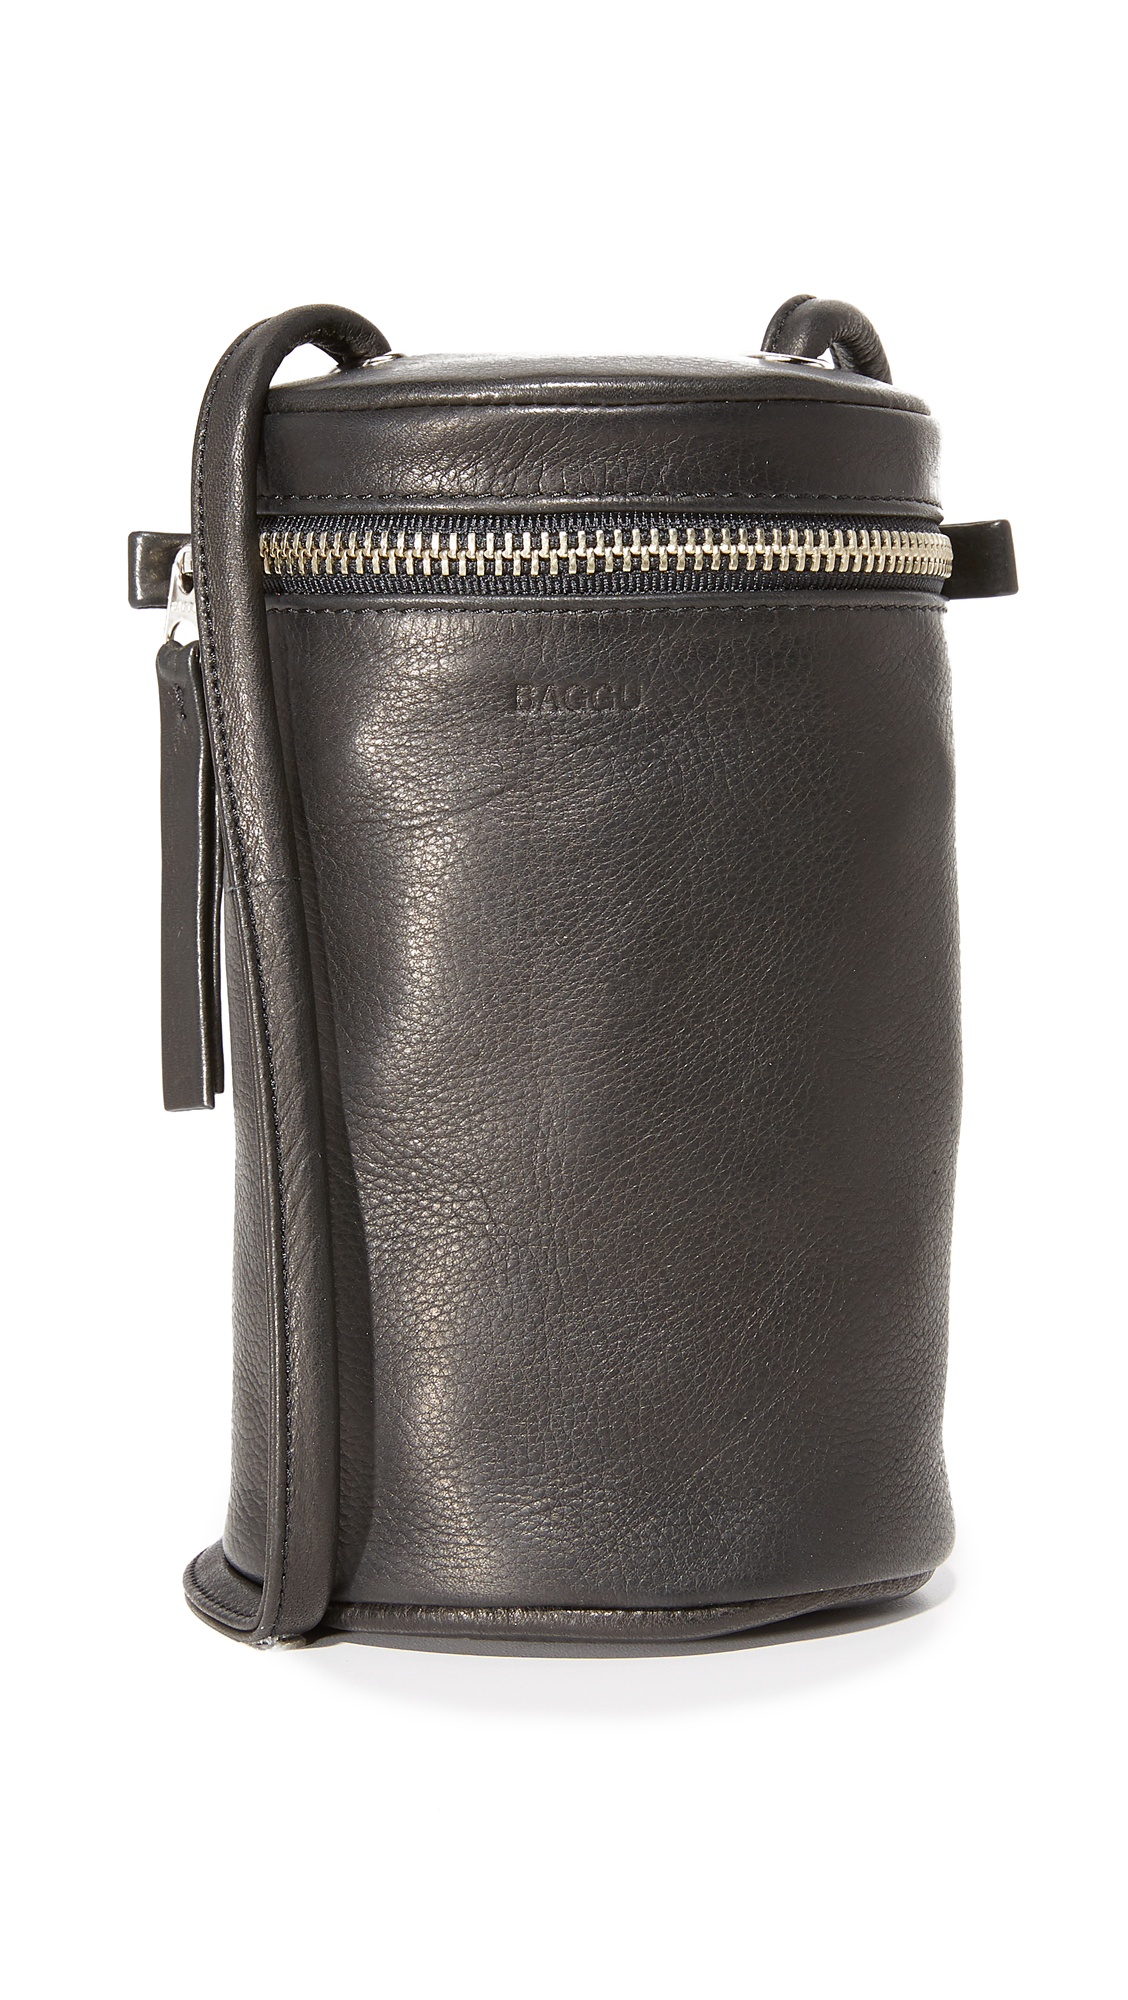 BAGGU Lens Cross Body Bag - Black